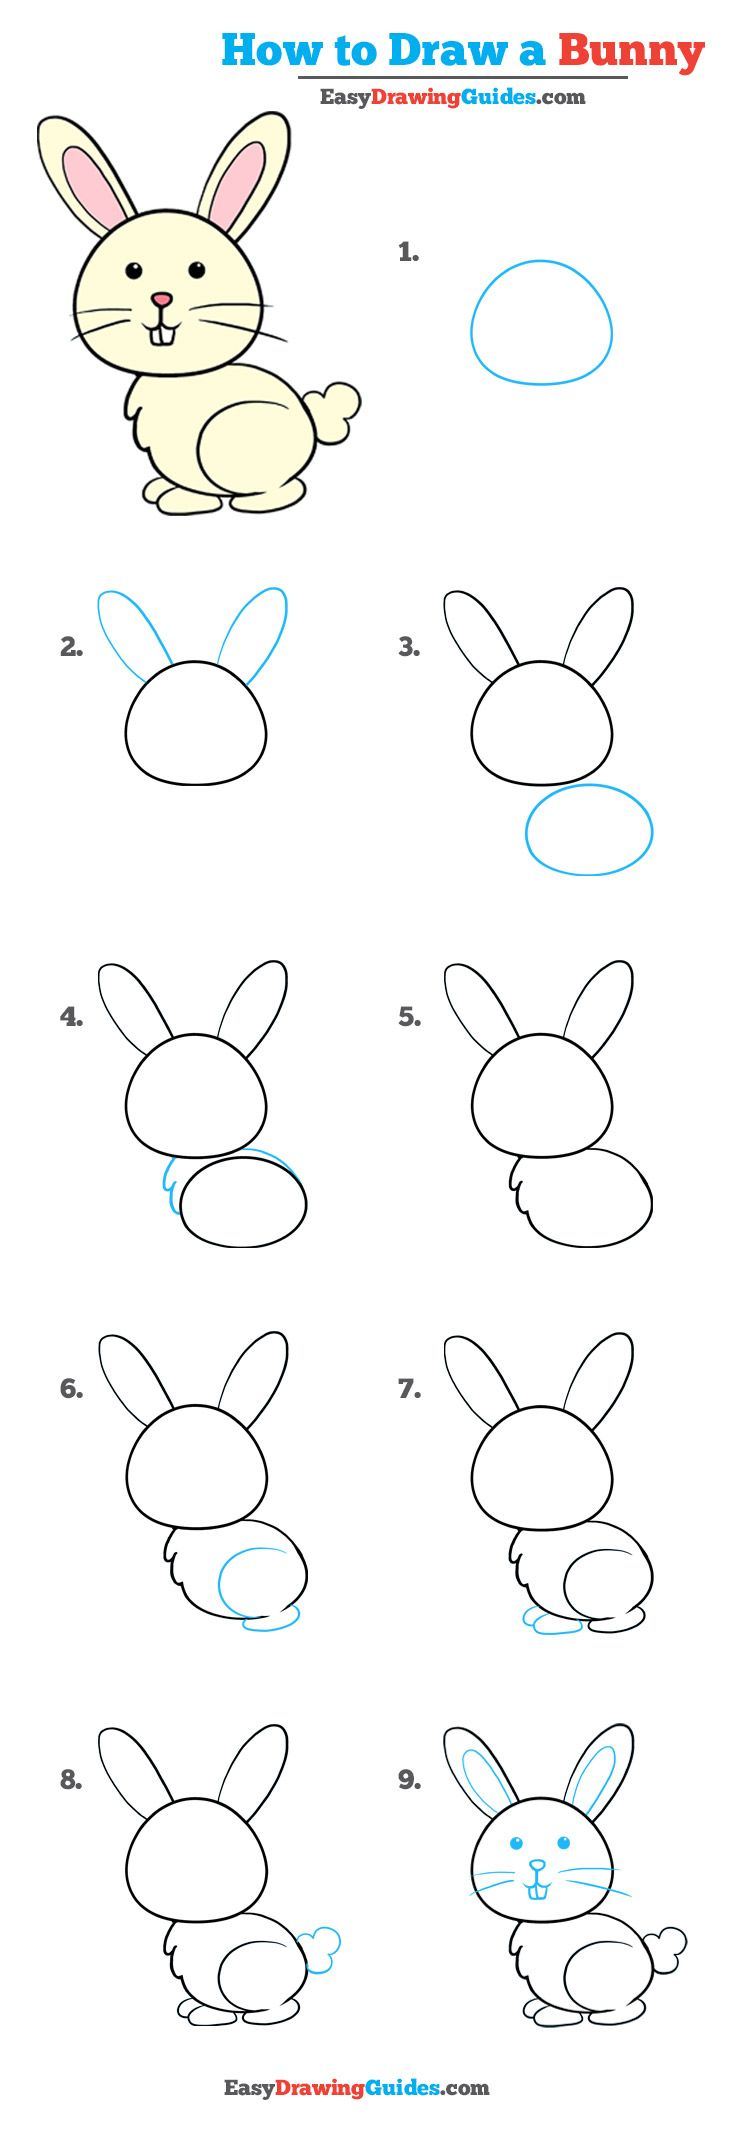 Uncategorized How To Draw A Rabbit For Kids learn how to draw with easy step by guides drawing an bunny tutorial